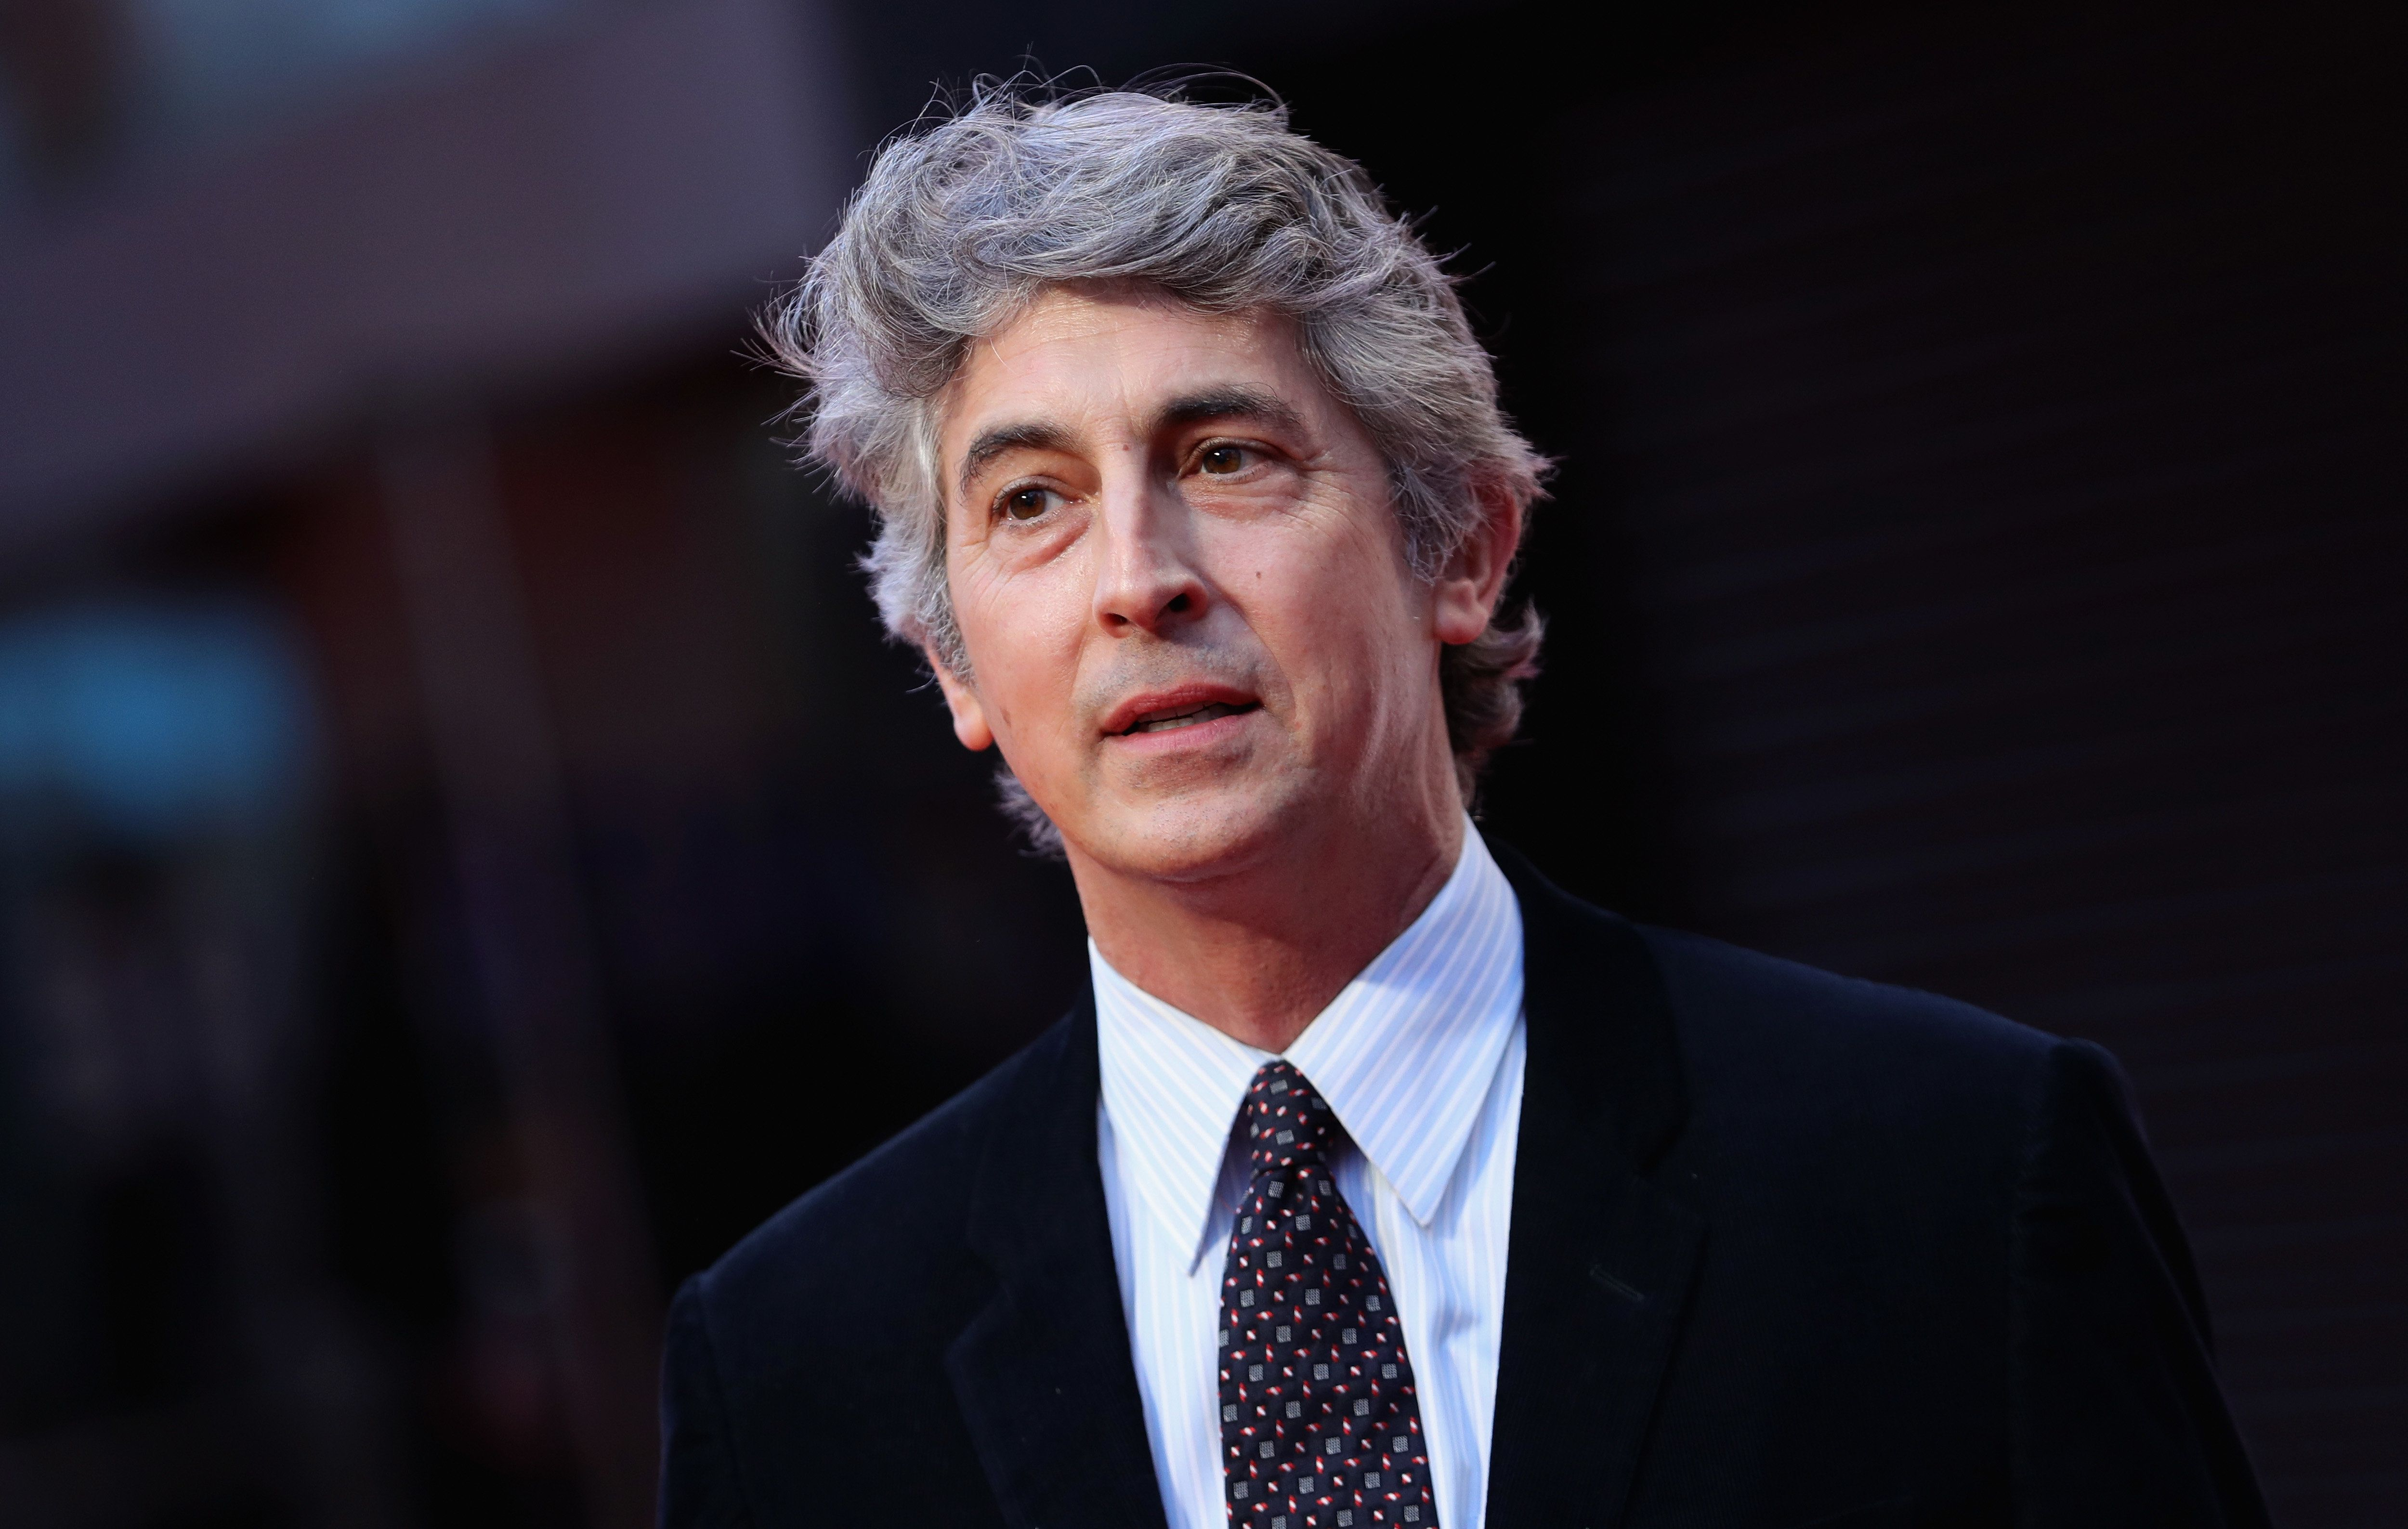 First He Made Movies About 'Strong, Feisty Women.' Now Alexander Payne Tackles The 'White Male Schnook.'